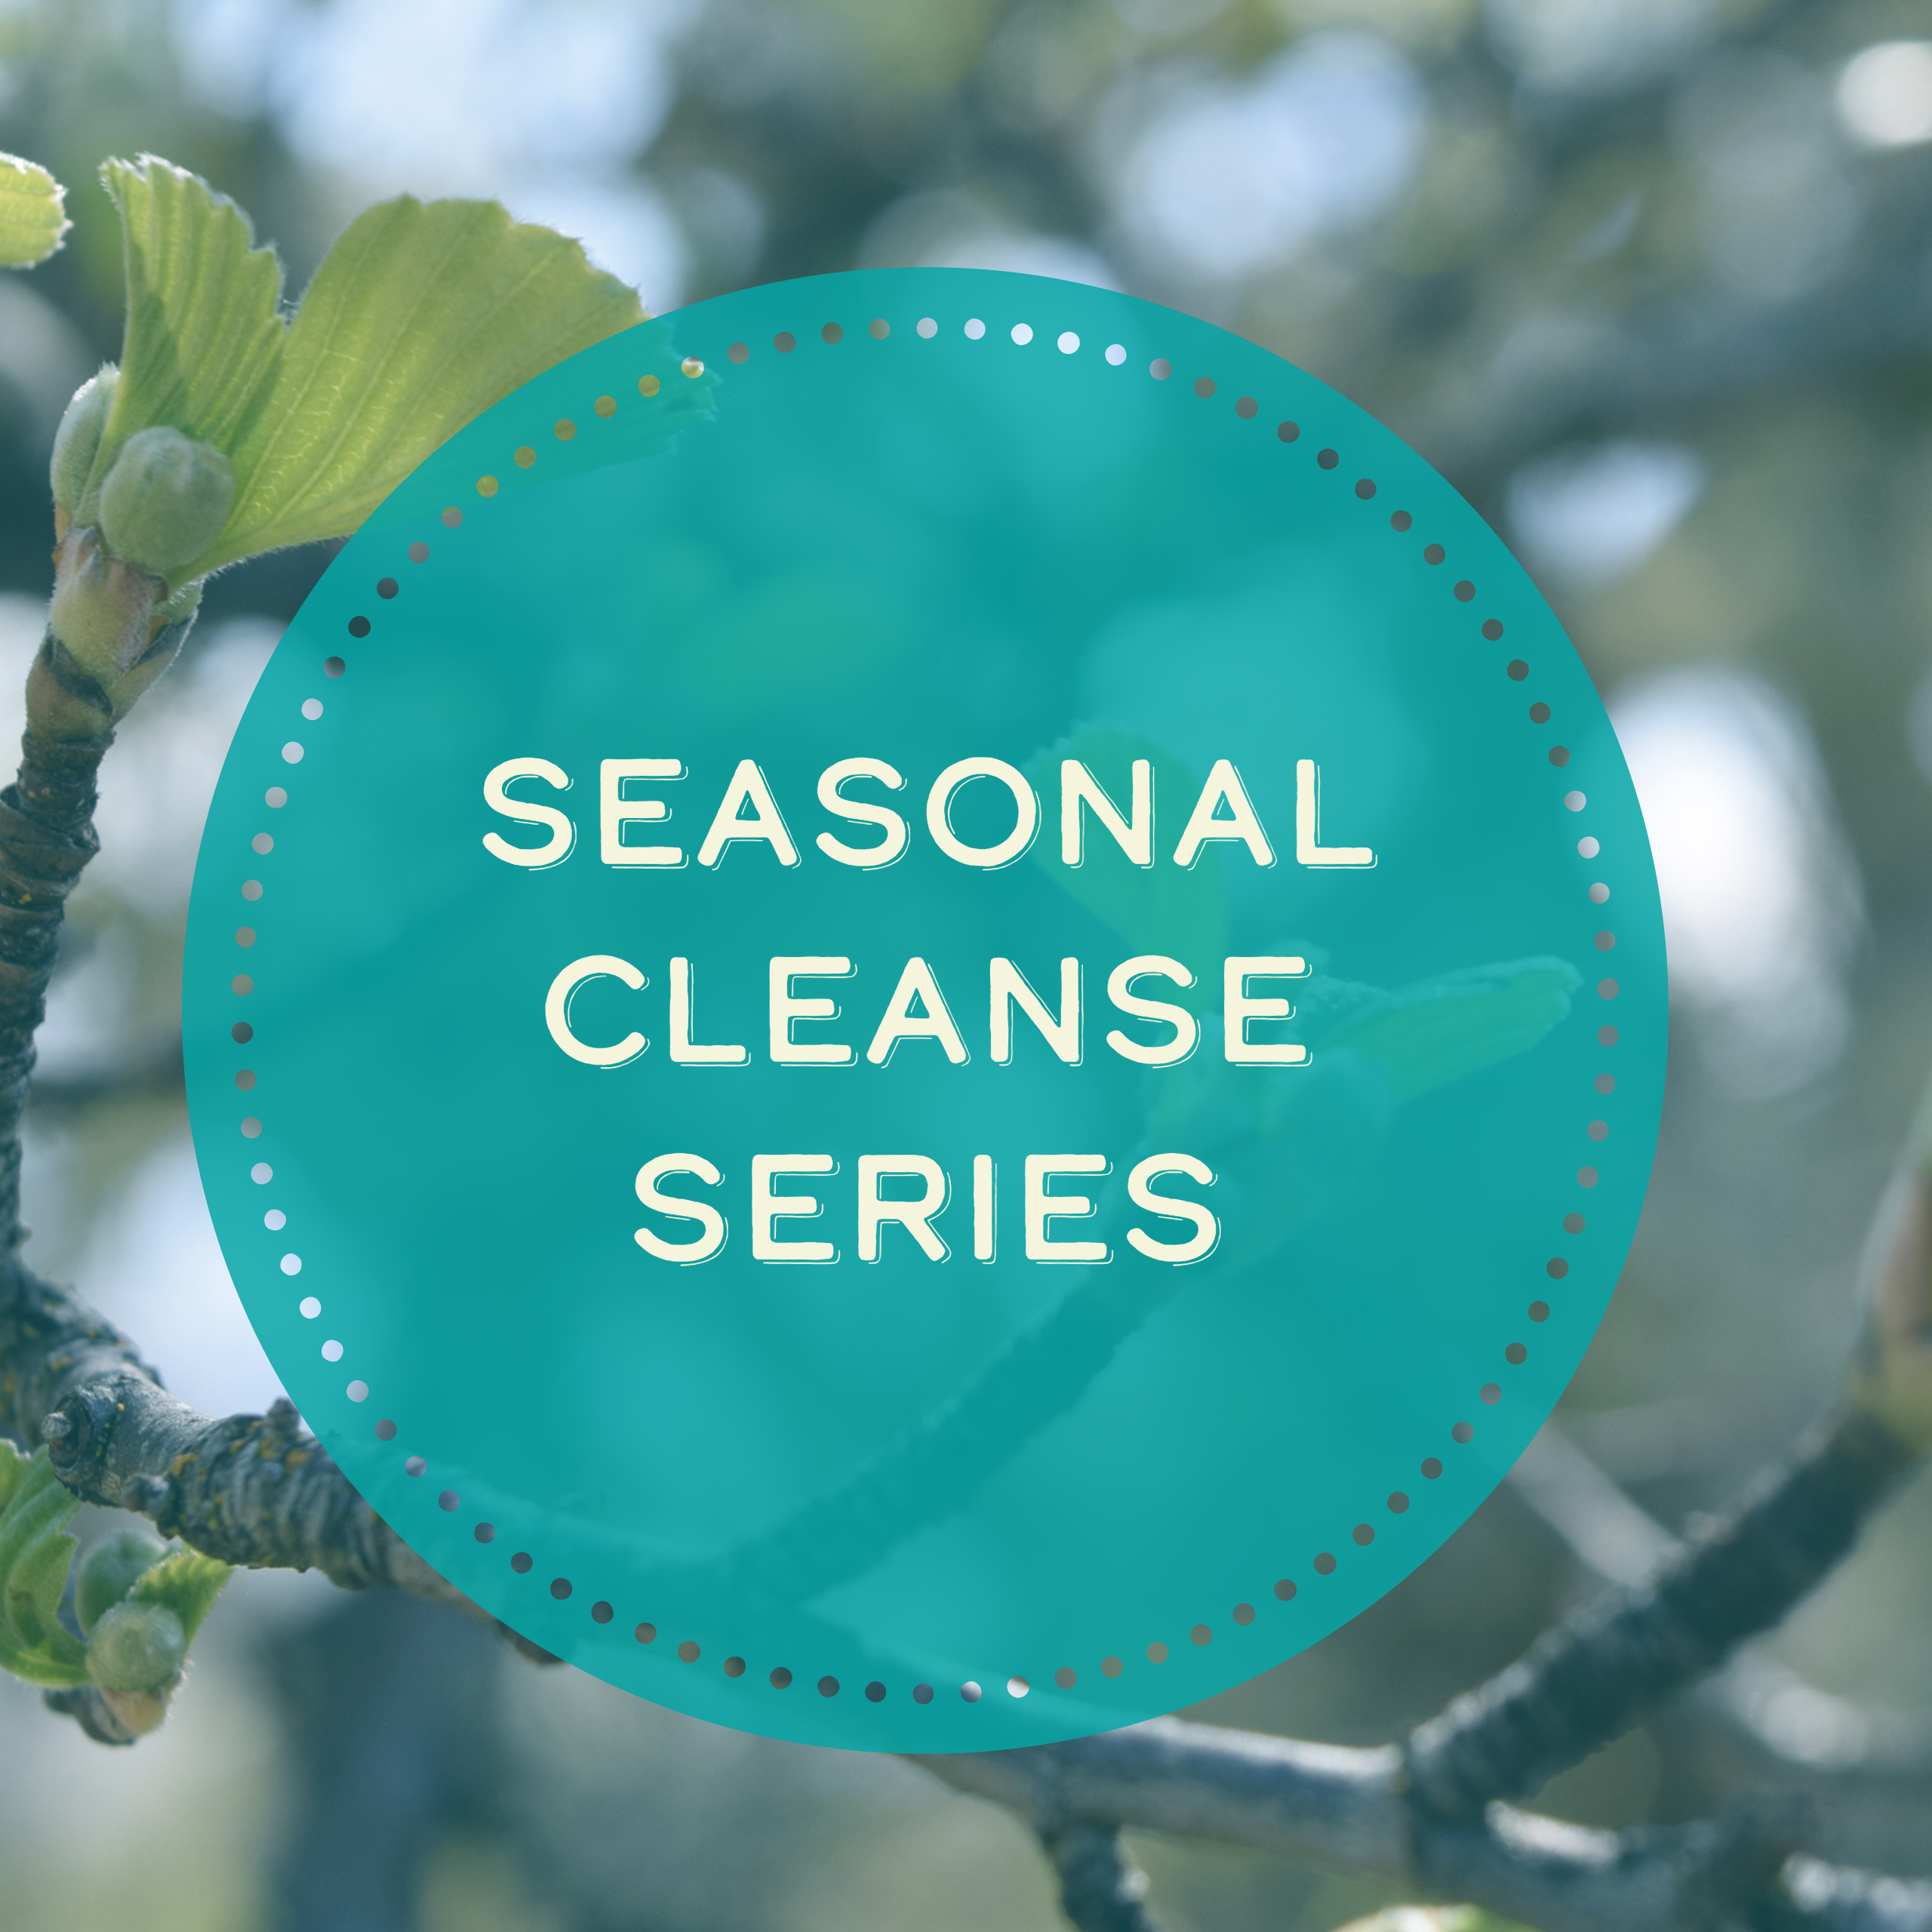 Seasonal Cleanse Series Ayurvedic Cleansing